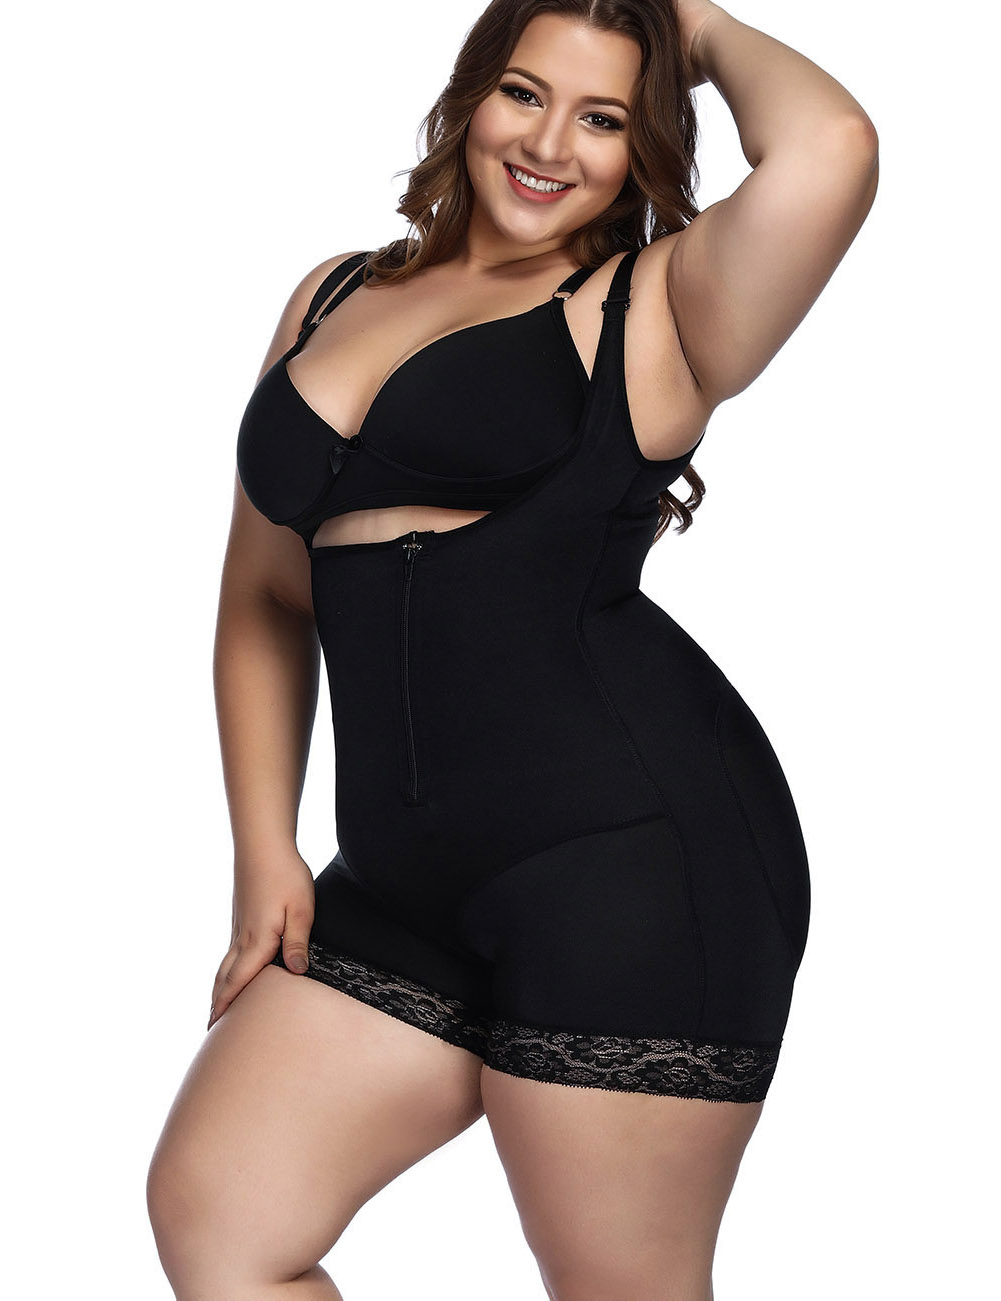 //cdn.affectcloud.com/hexinfashion/upload/imgs/Shaper/Body_Shaper/B180059-BK1/B180059-BK1-201911055dc142f803db1.jpg